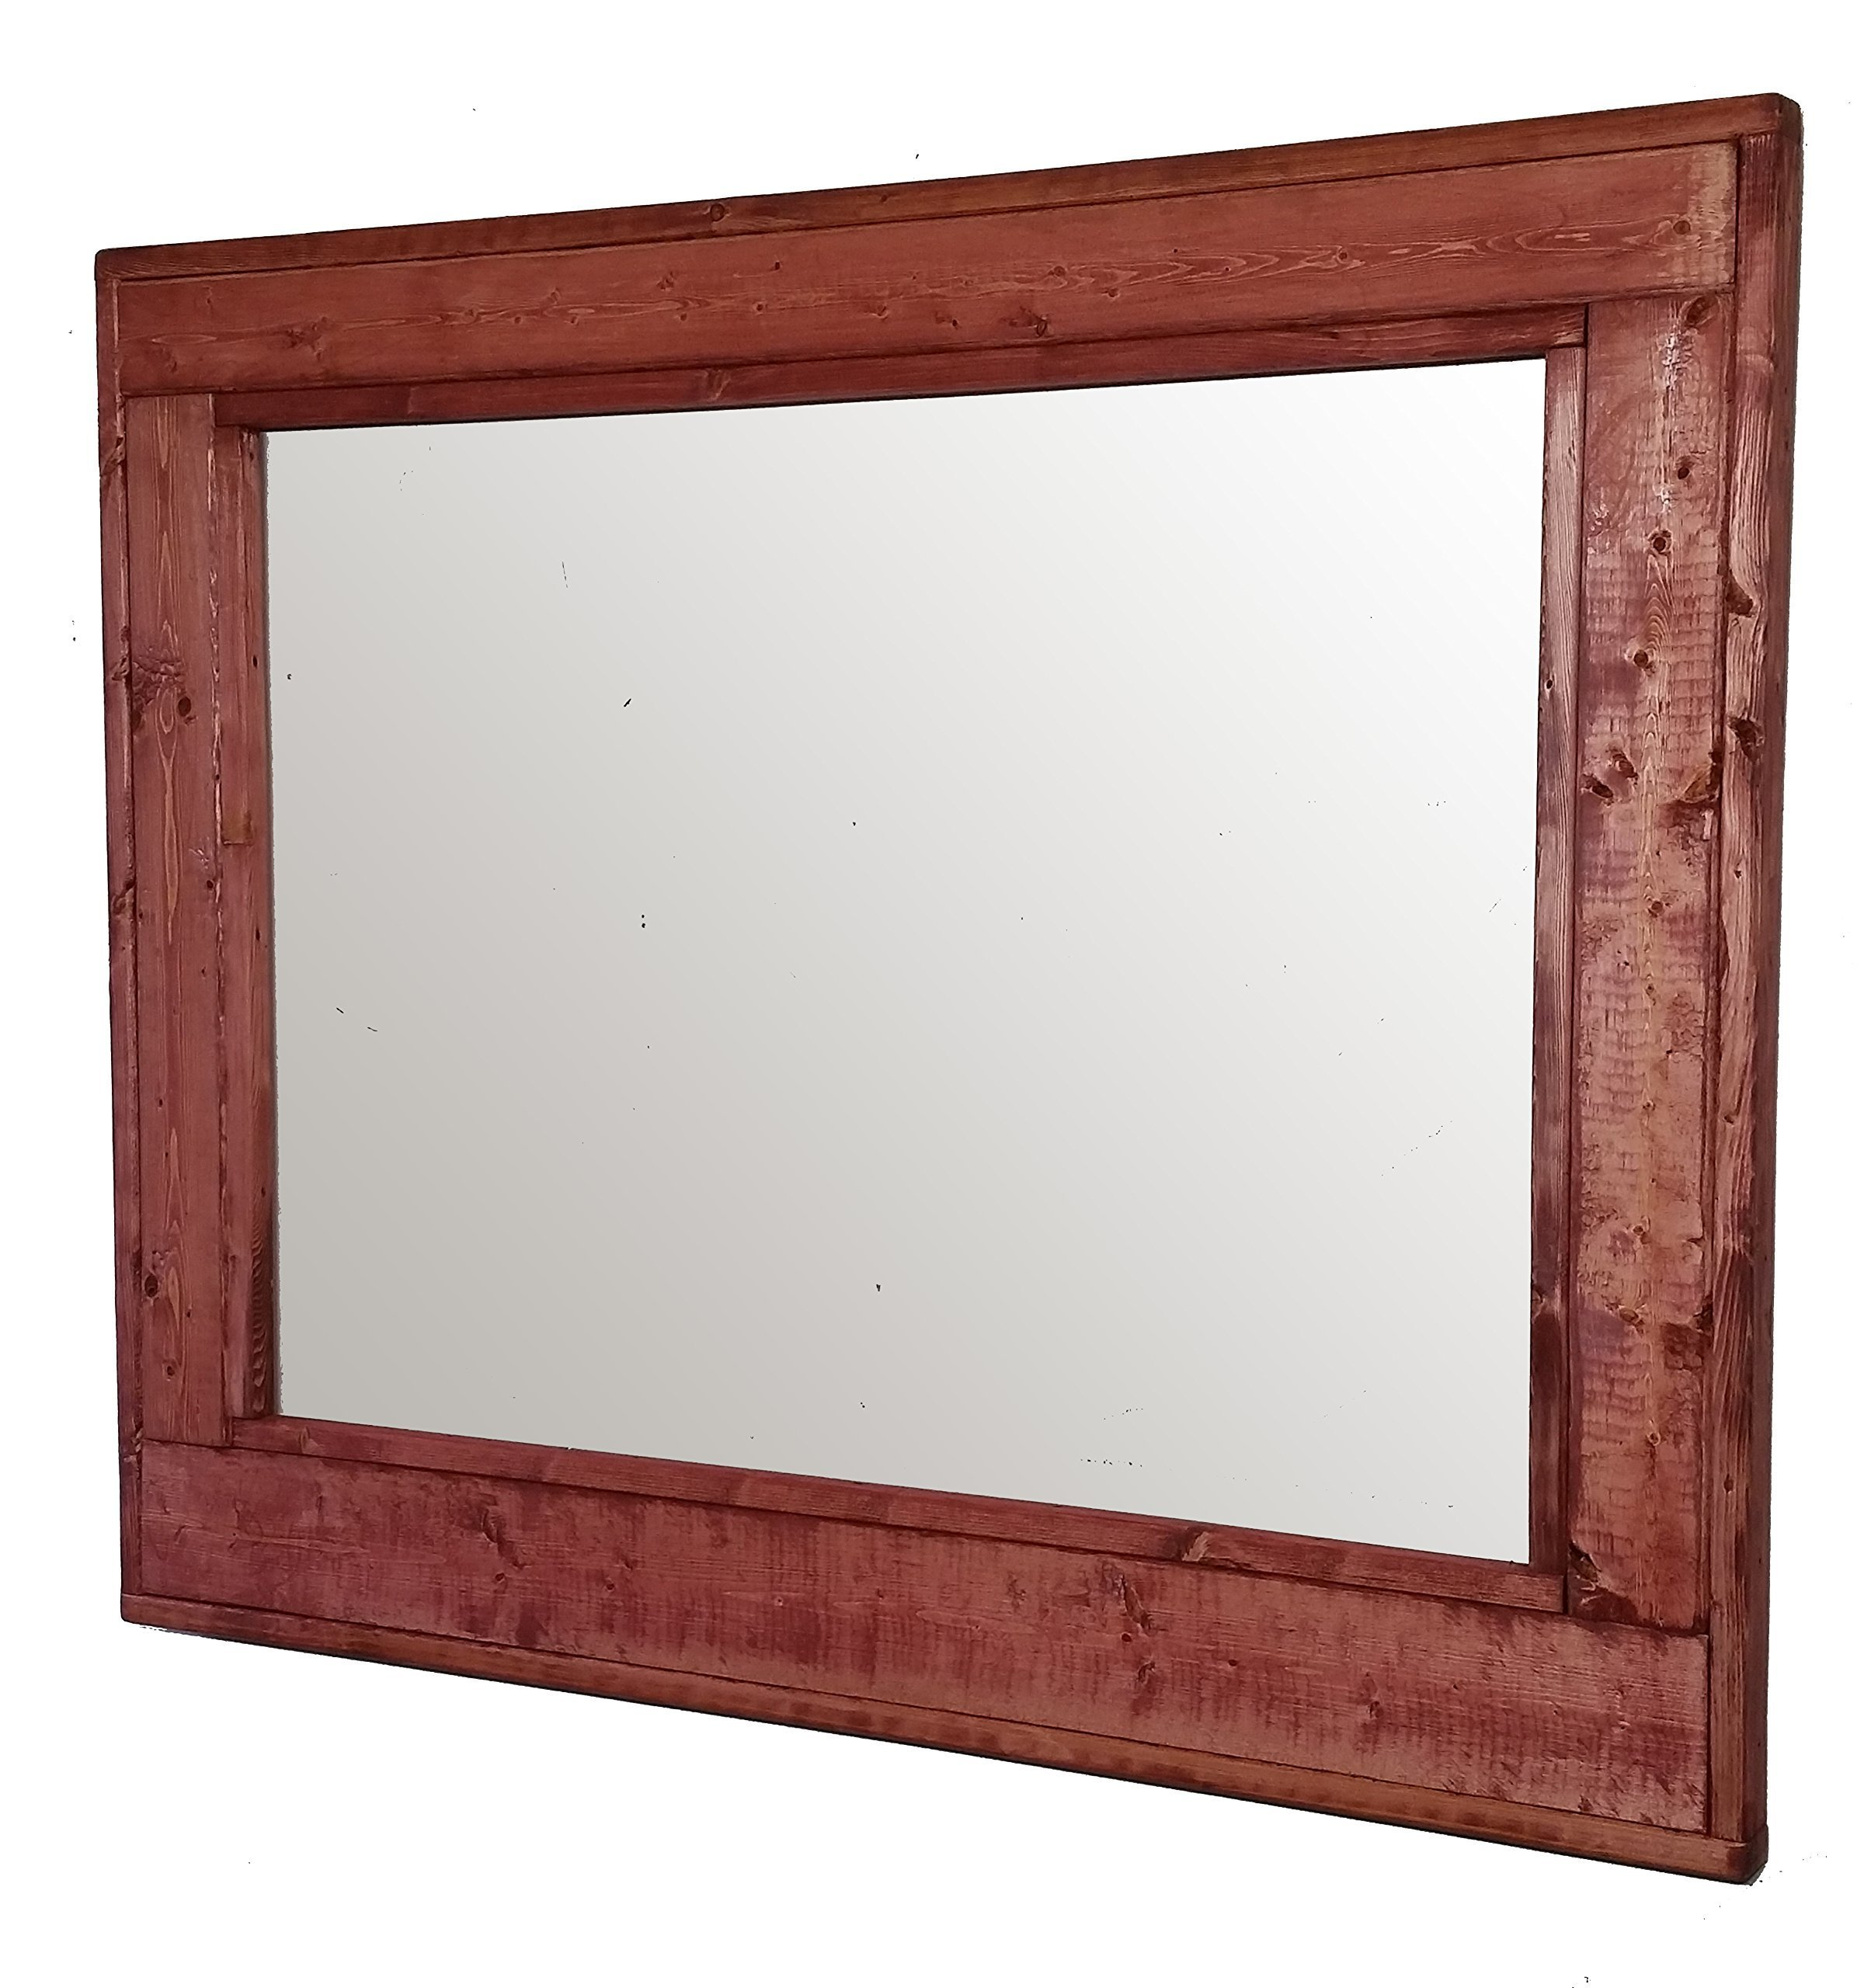 Herringbone 36 x 30 Horizontal Framed Mirror Stained in Sedona Red - Reclaimed Wood Mirror - Large Wall Mirror - Rustic Modern Home - Home Decor - Mirror - Housewares by Renewed Decor